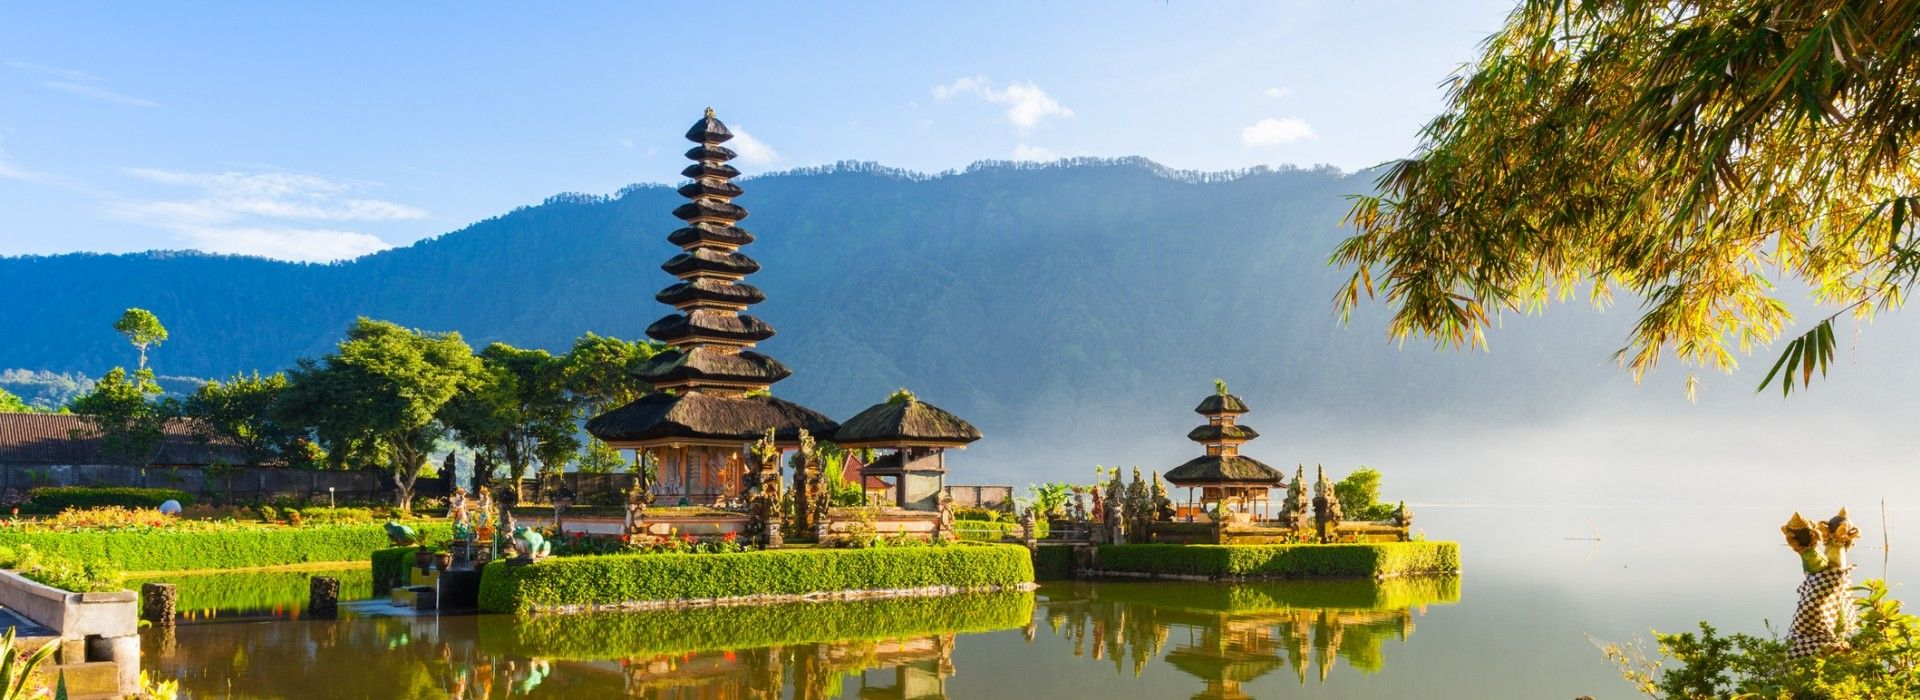 Wildlife, landscapes and nature Tours in Indonesia